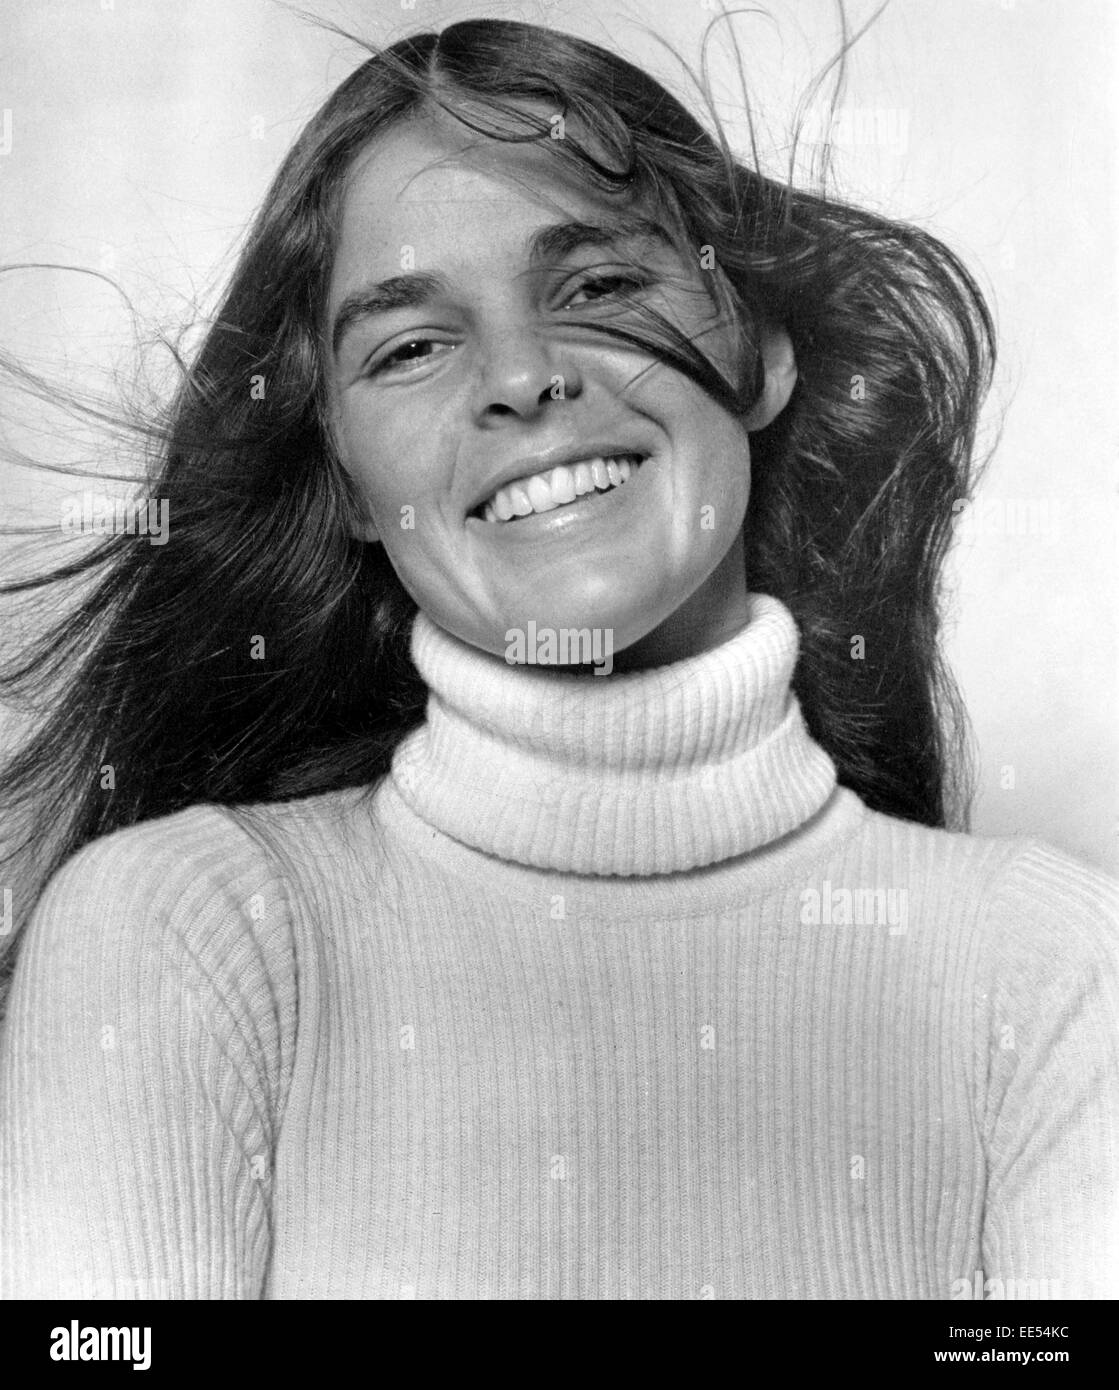 Ali MacGraw, Publicity Portrait for the Film 'Love Story', 1970 - Stock Image